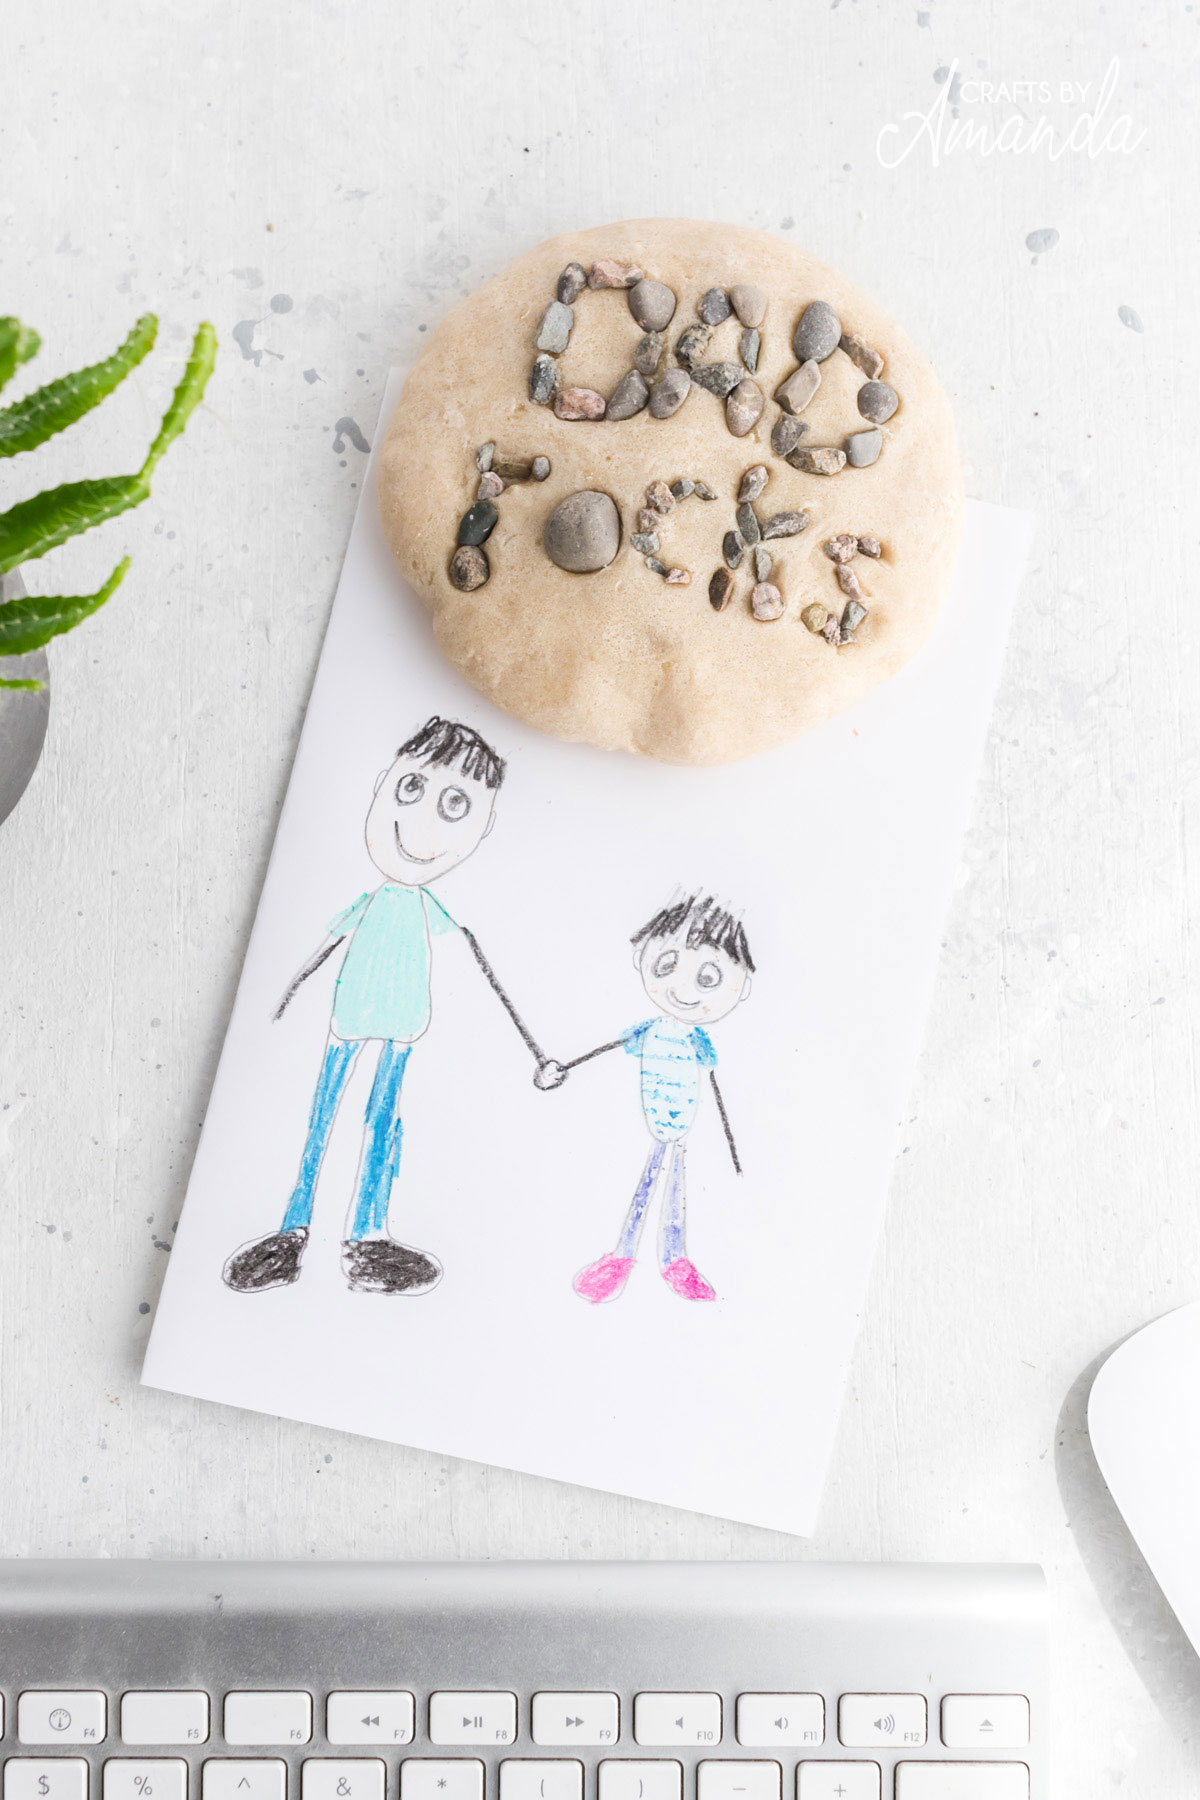 dad rocks paperweight on a desk with a cute drawing by a child